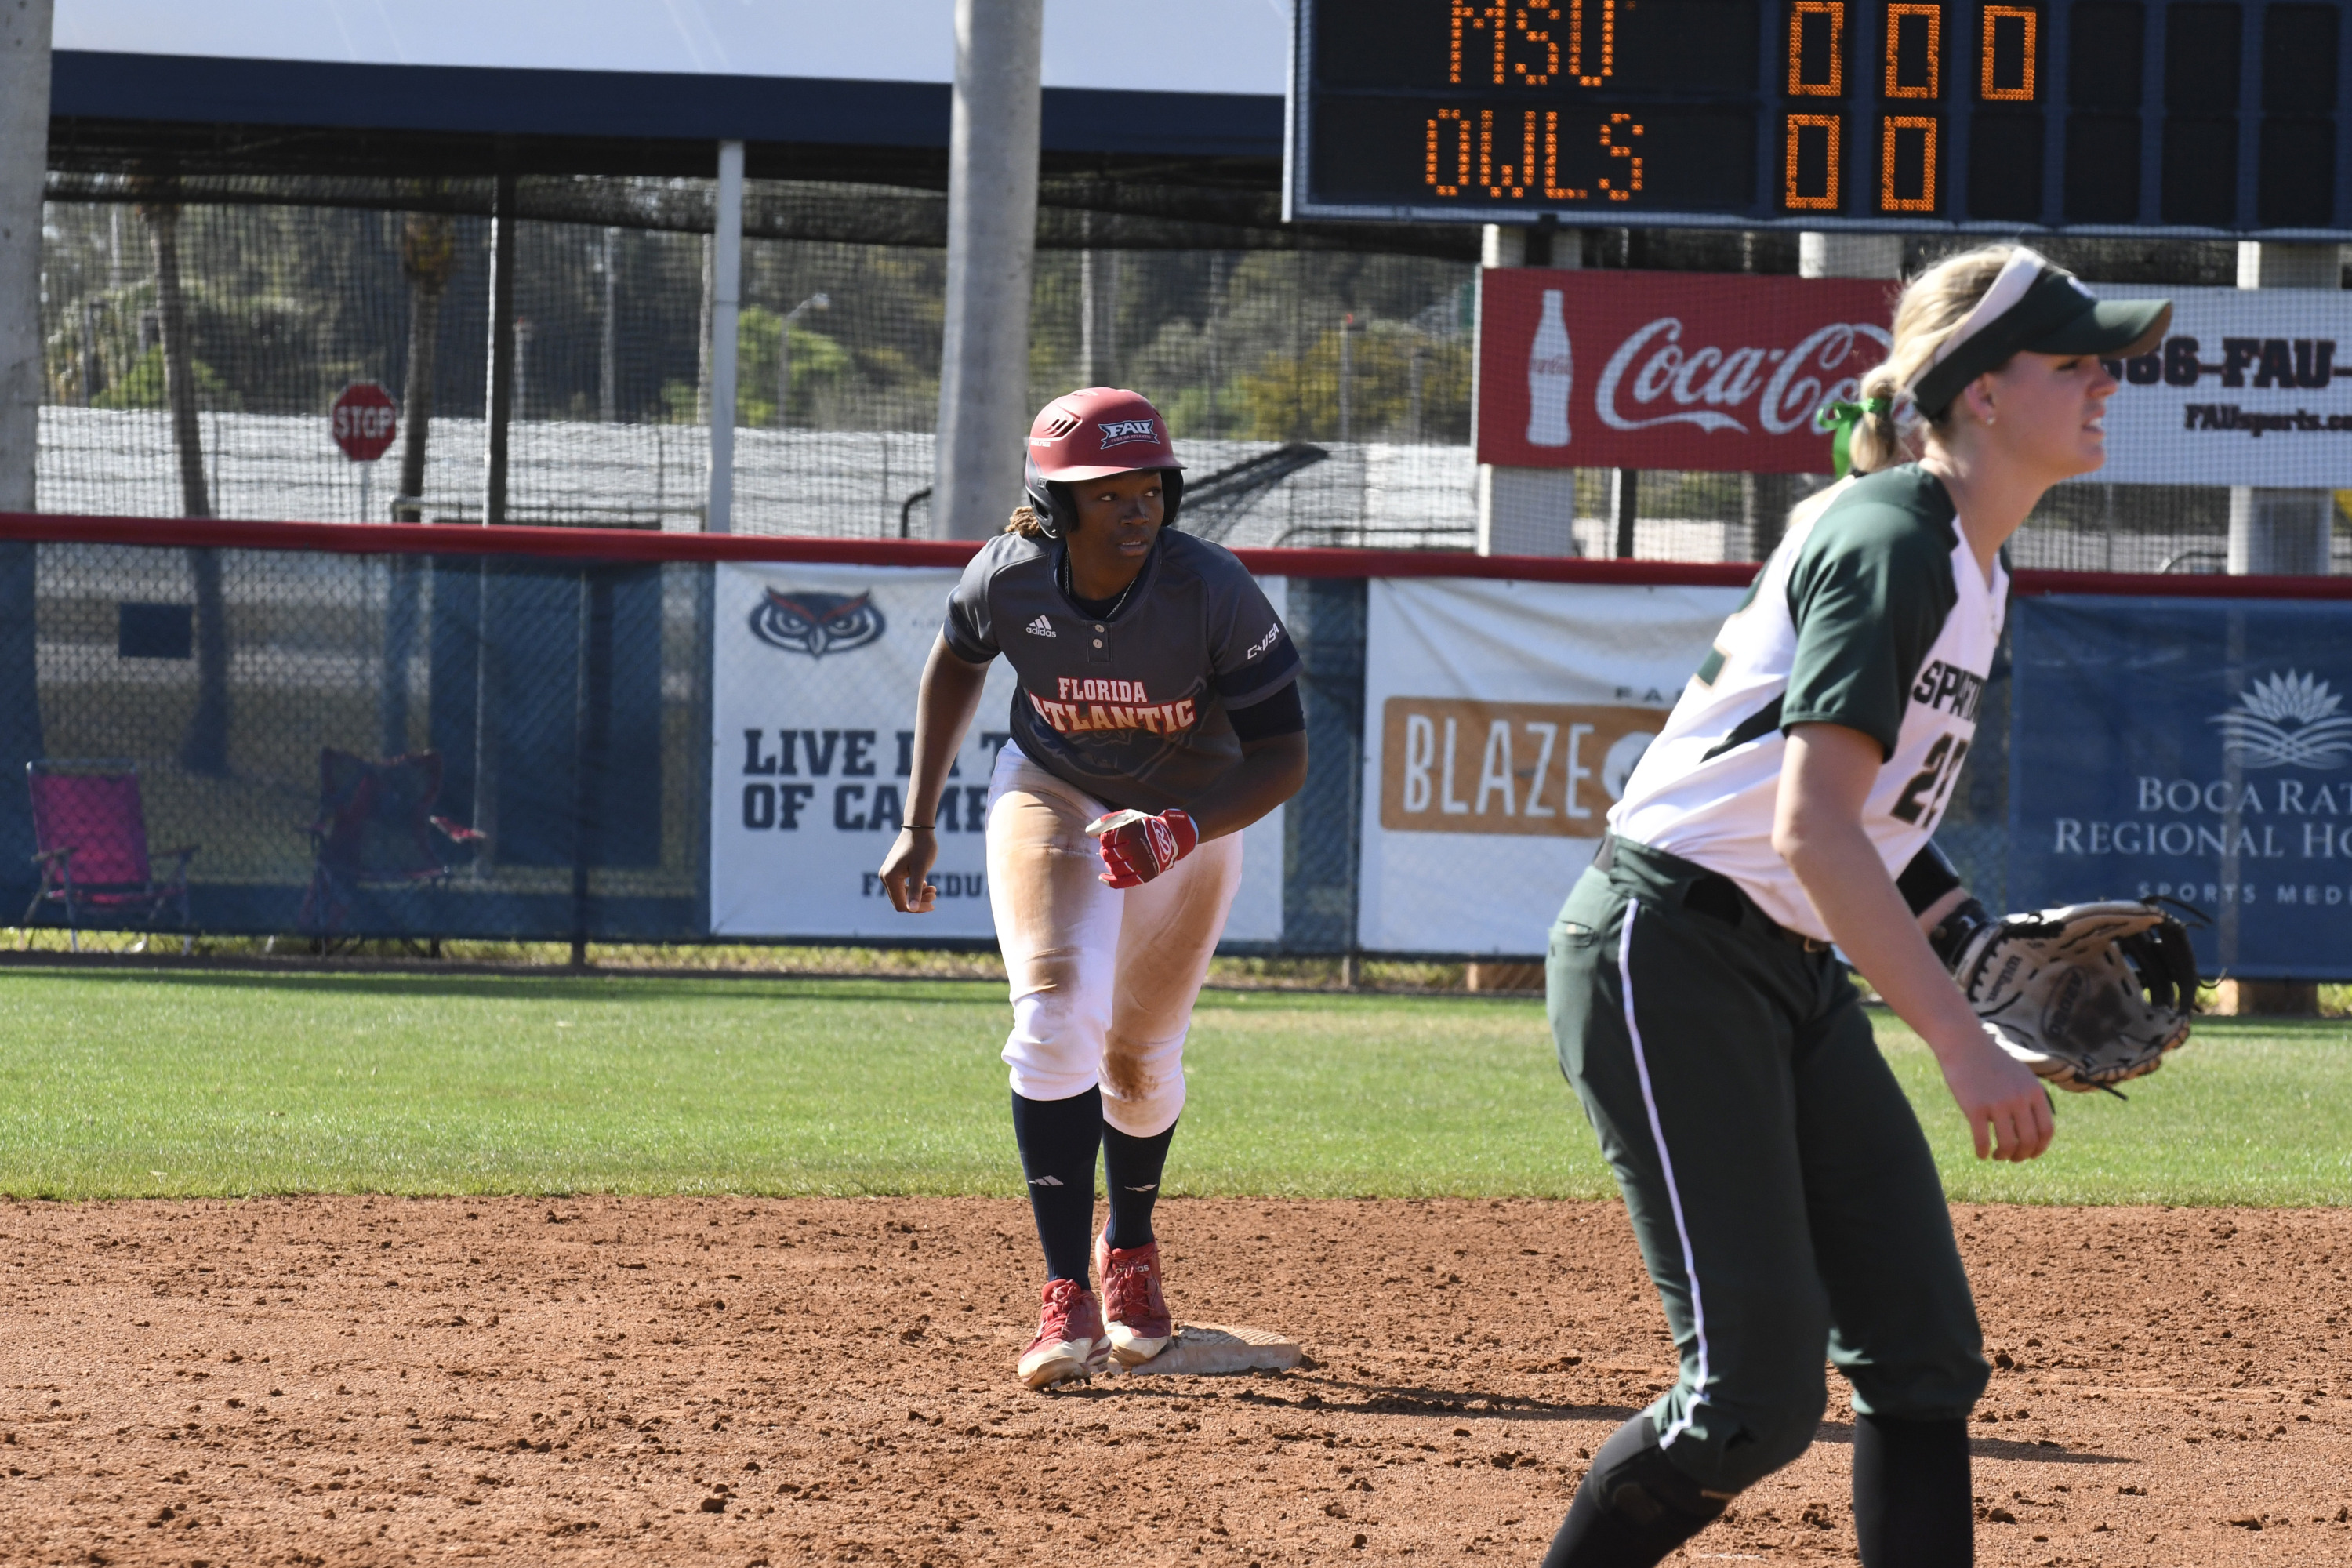 Emily Lochten Named to USA Softball Player of the Year Watch